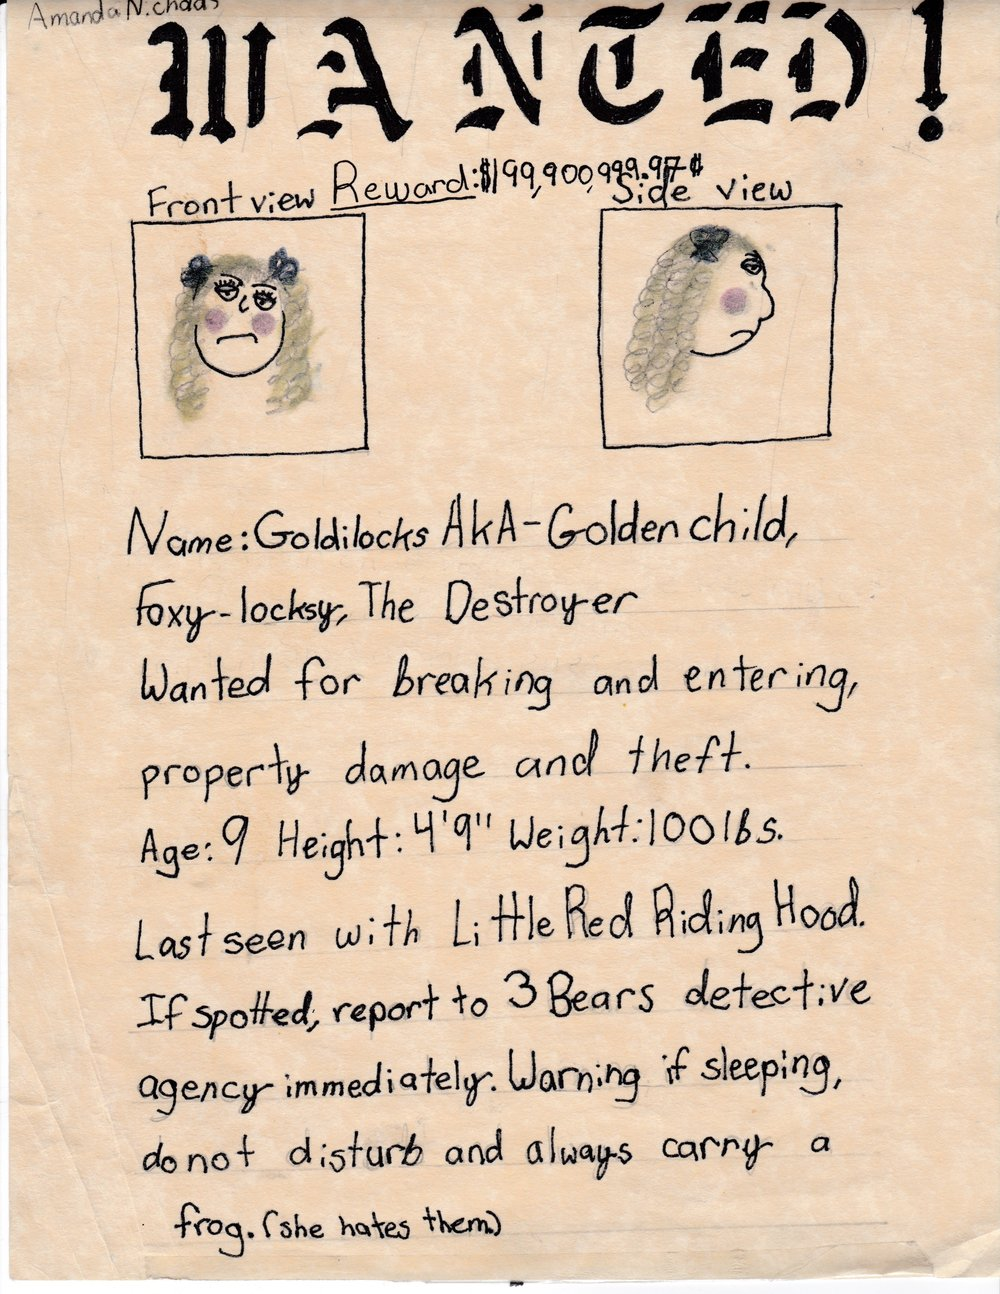 By Amanda Nichols, 4th grade, circa 2000.